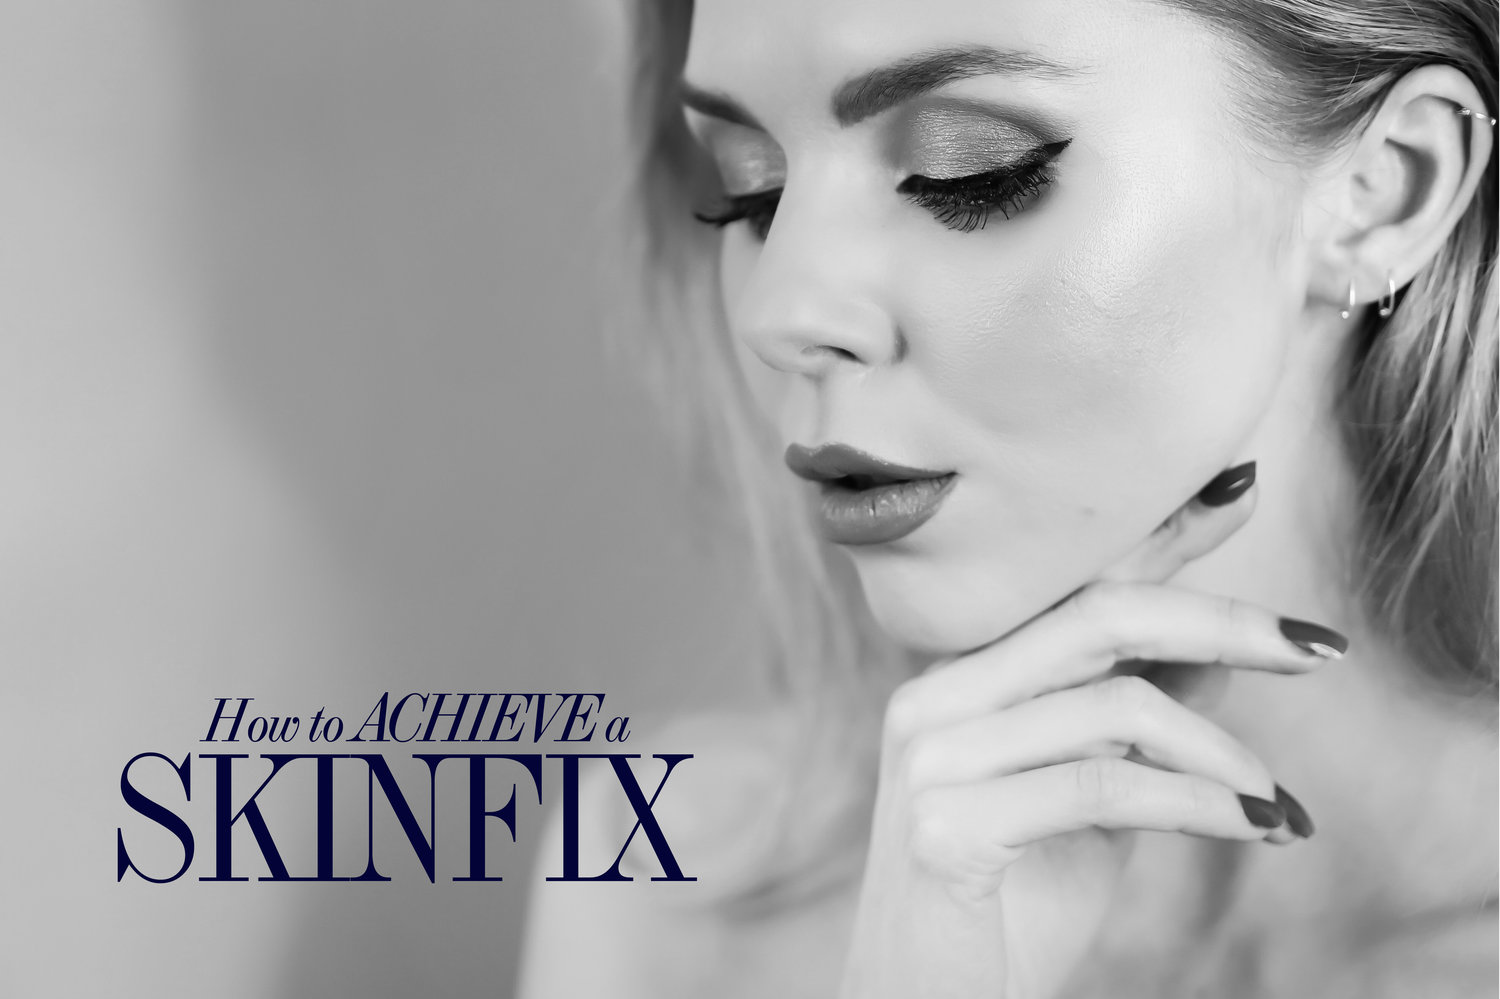 skinfix, beauty products for sensitive skin, beauty blogger uk, british blogger, Laura Blair, london fashion girl